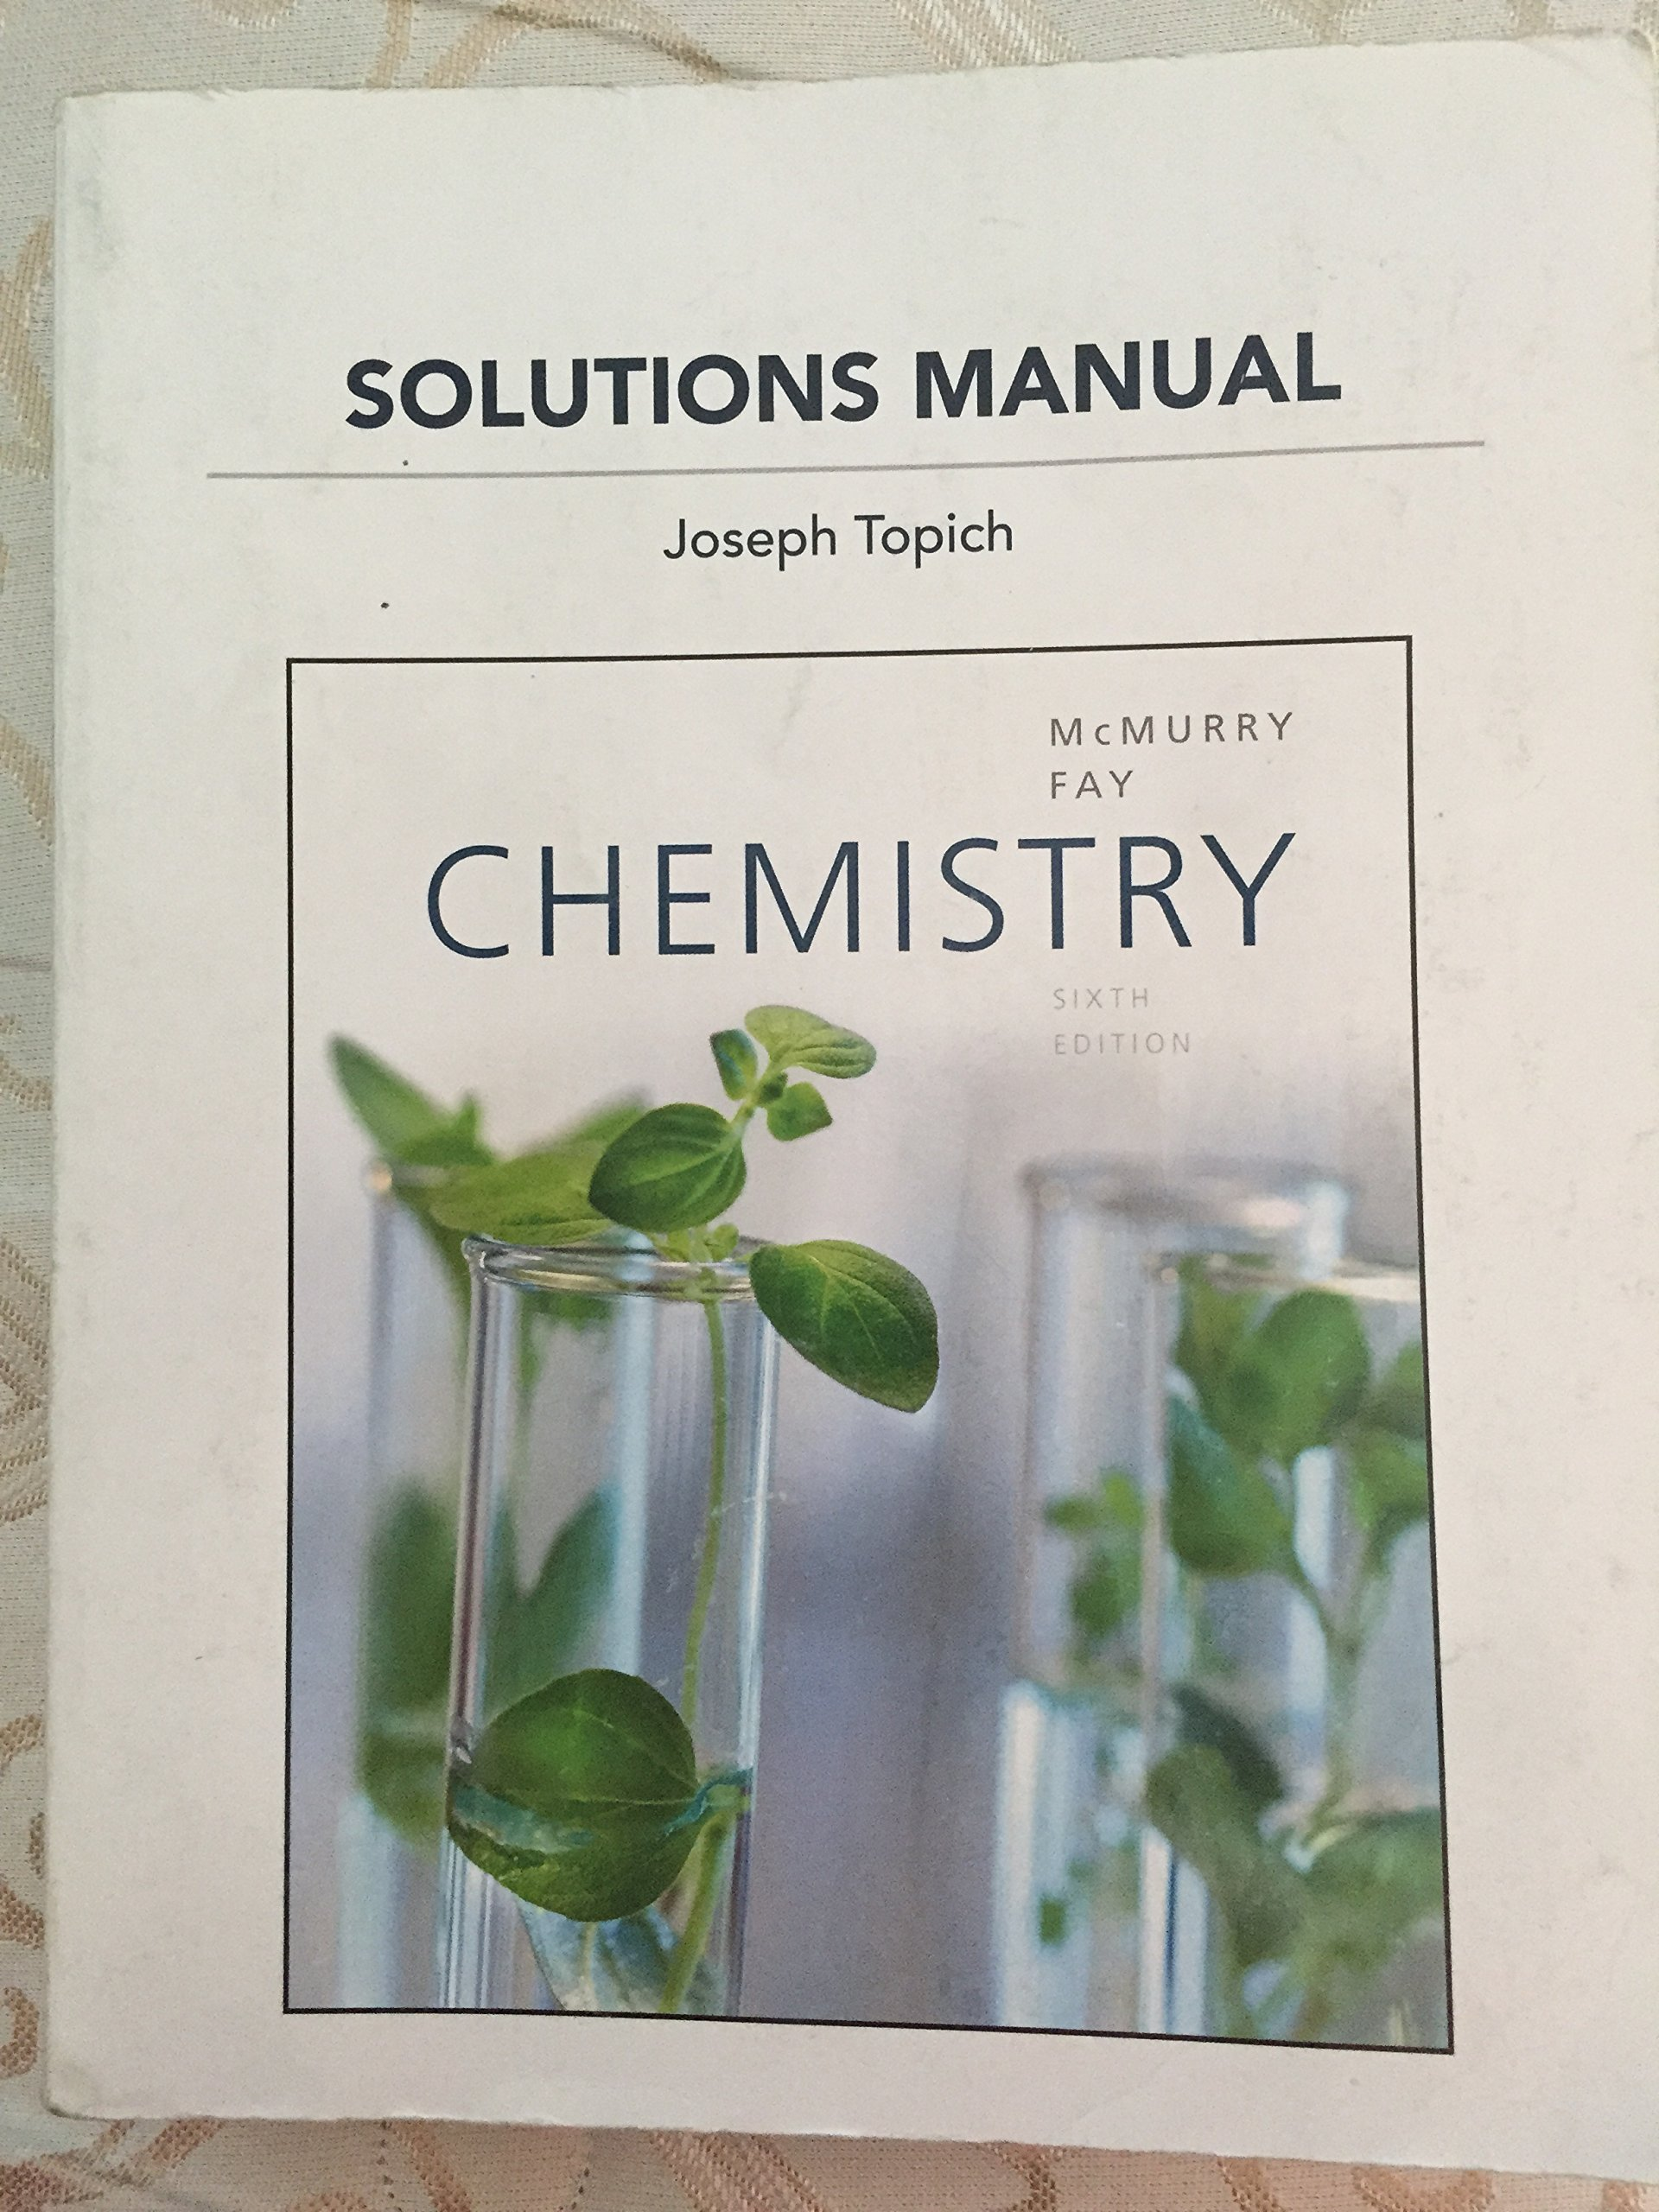 Solutions Manual for Chemistry By Joseph Topich (sixth edition) pdf epub